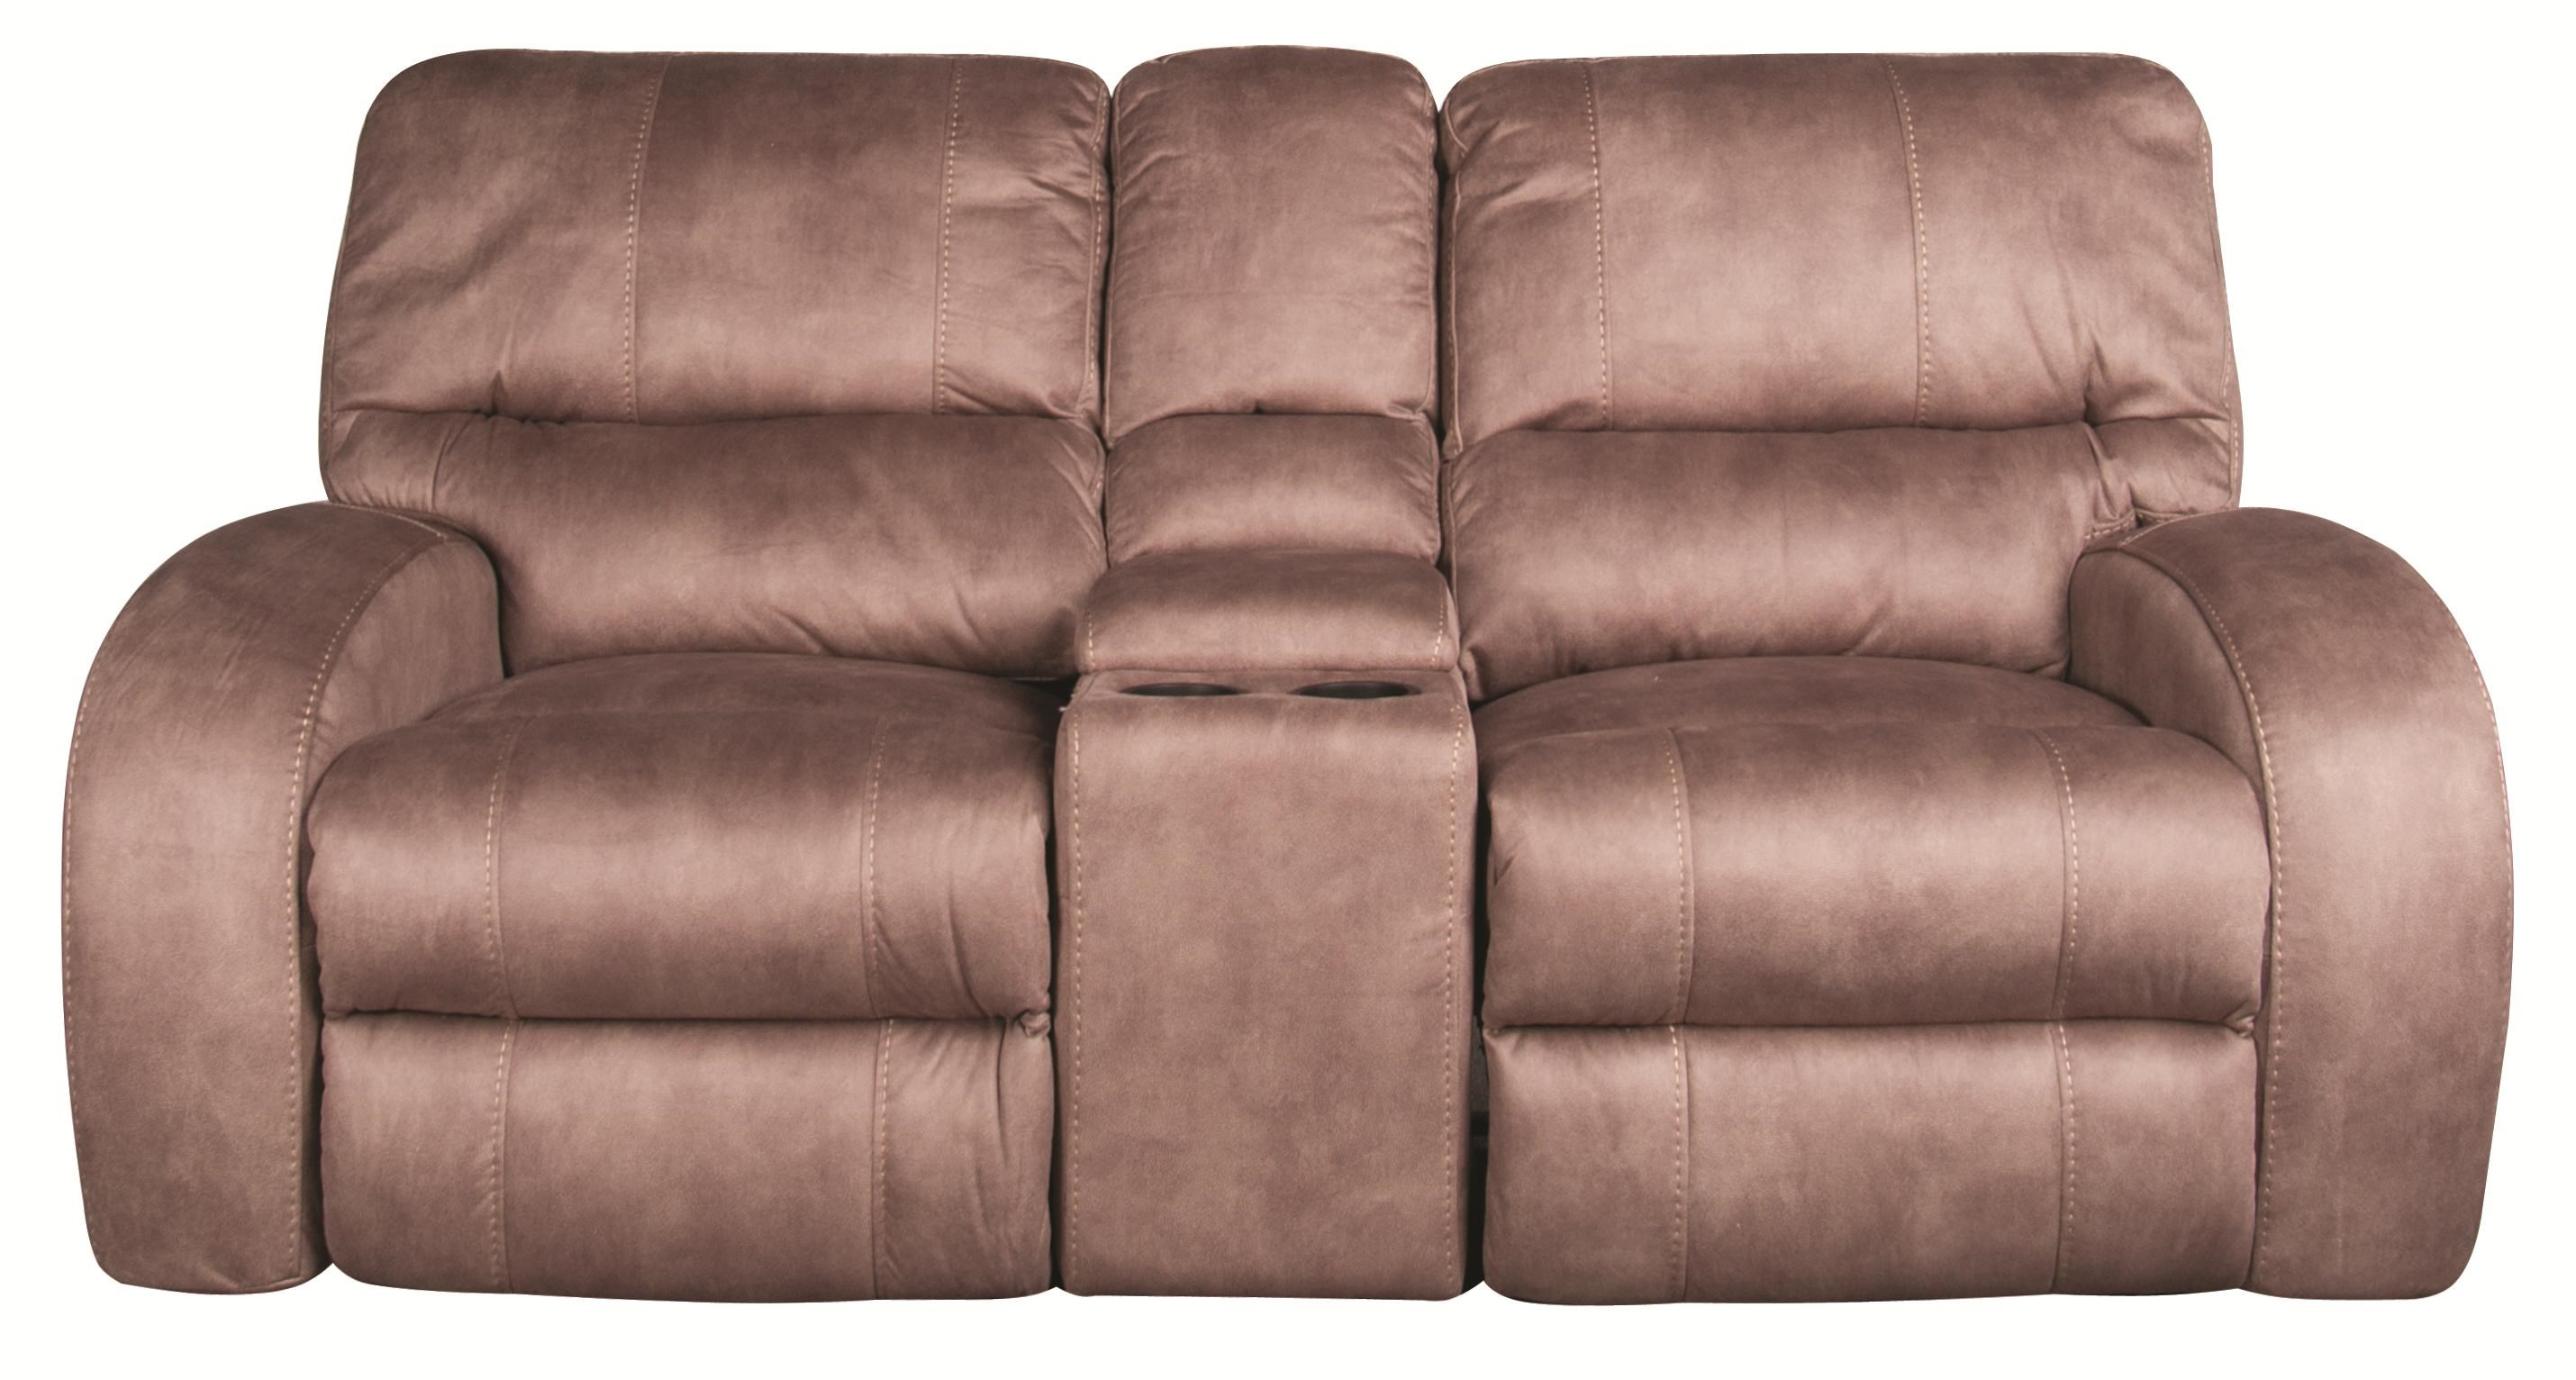 caiden 3 piece glider recliner loveseat with console morris home reclining love seat